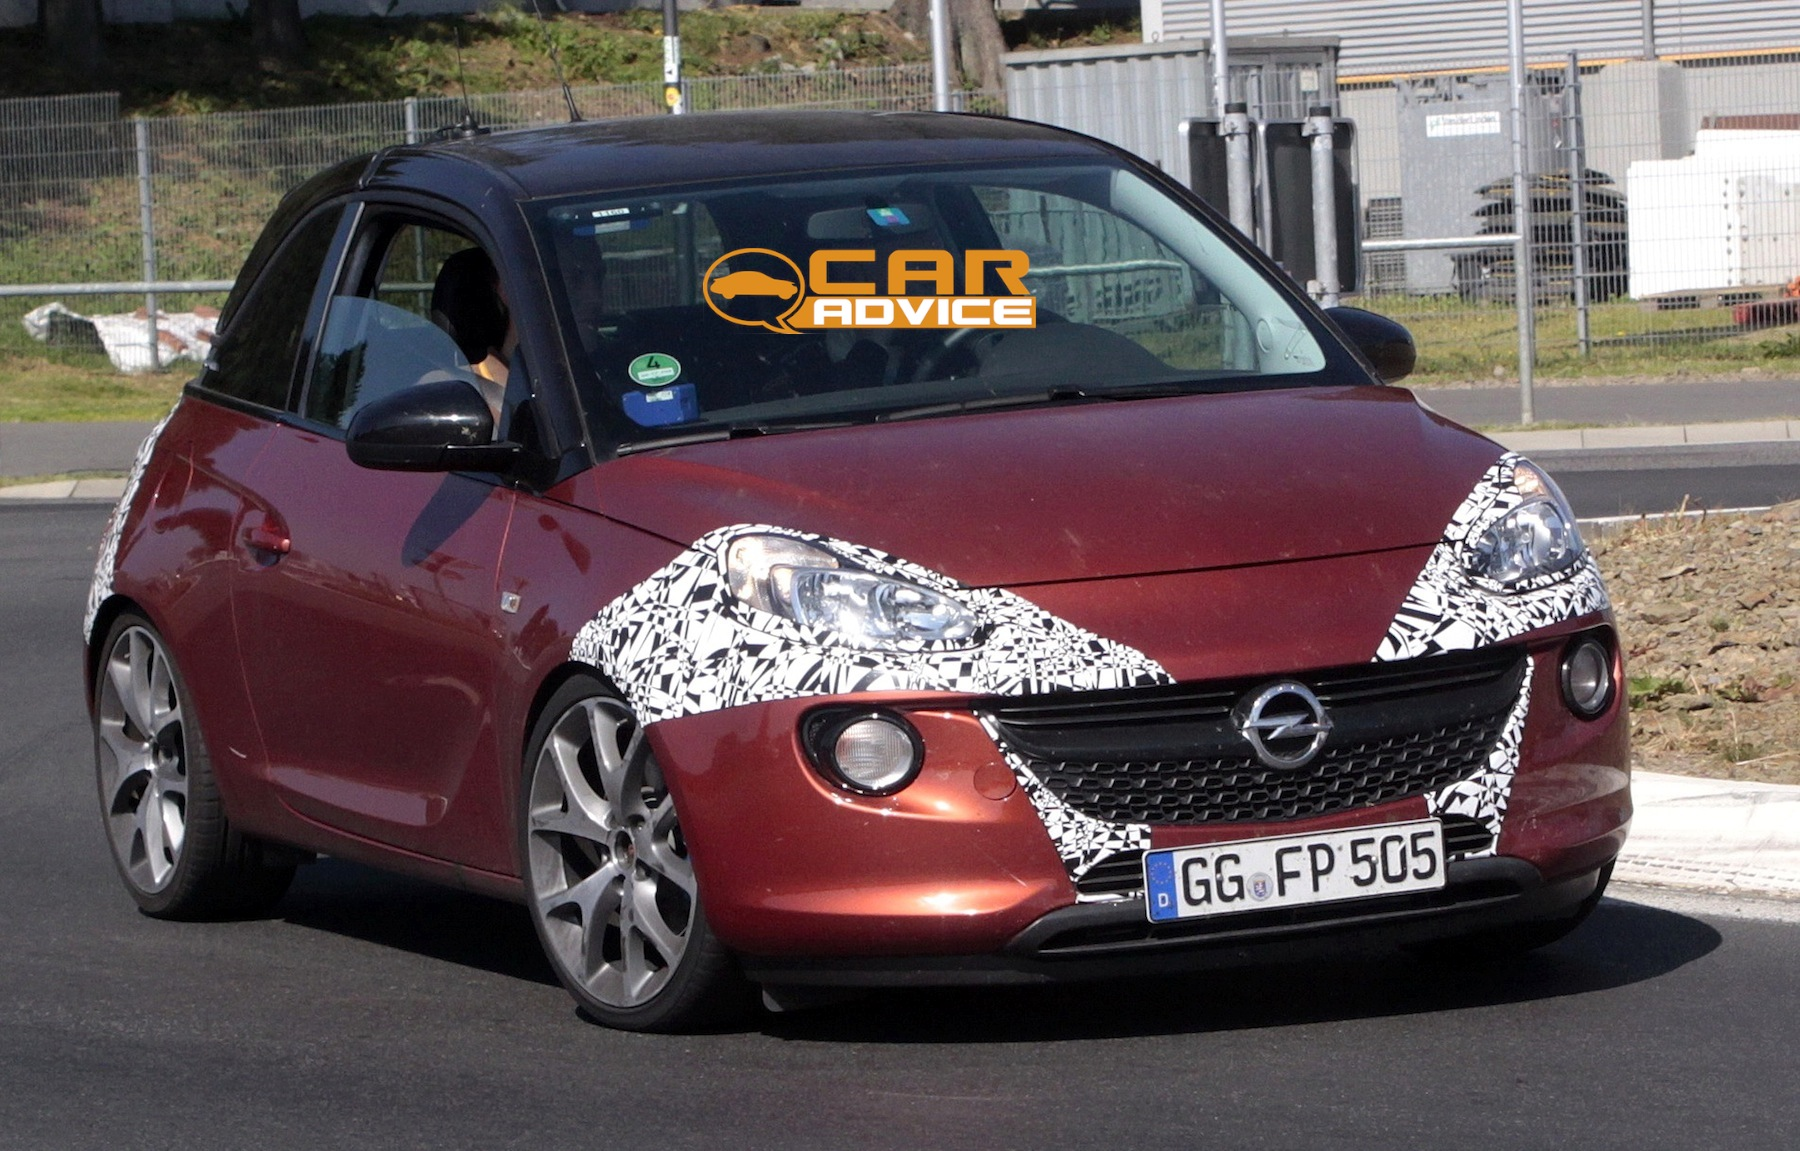 Opel Adam OPC: potential performance mini spied - photos | CarAdvice